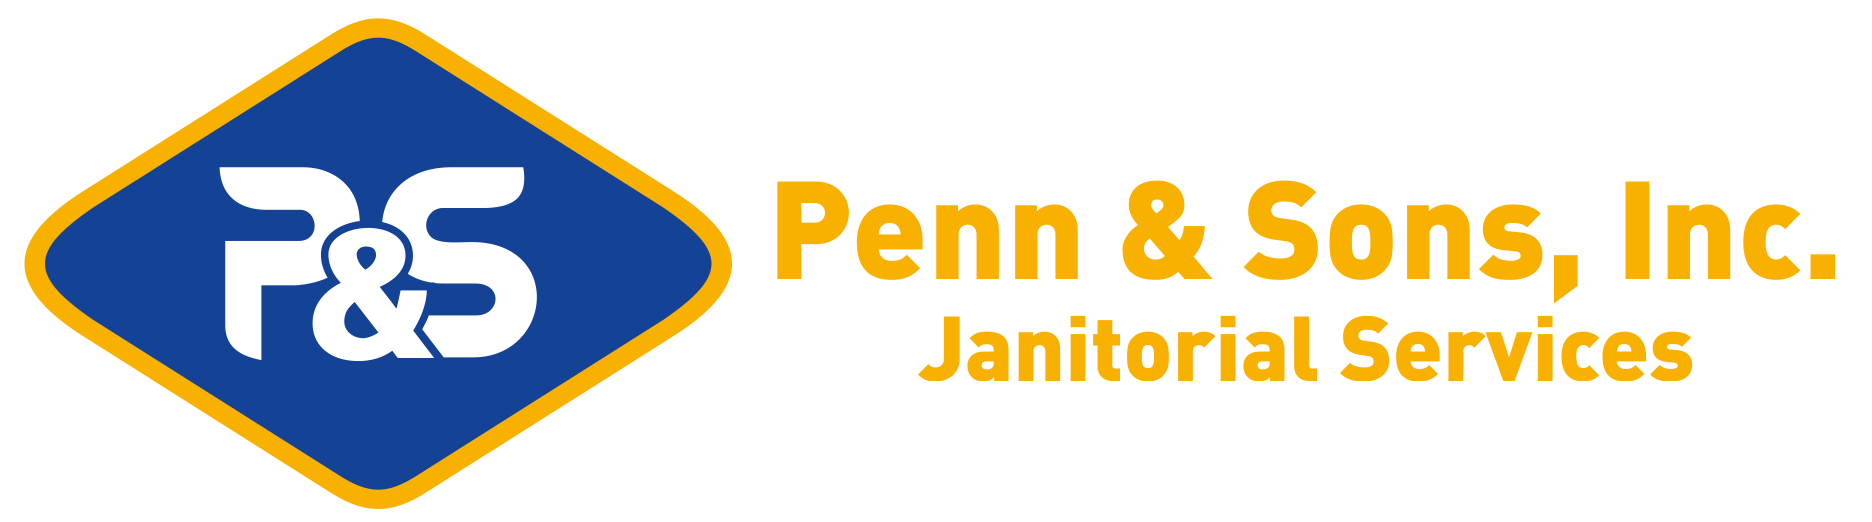 Penn & Sons, Inc. Janitorial Services